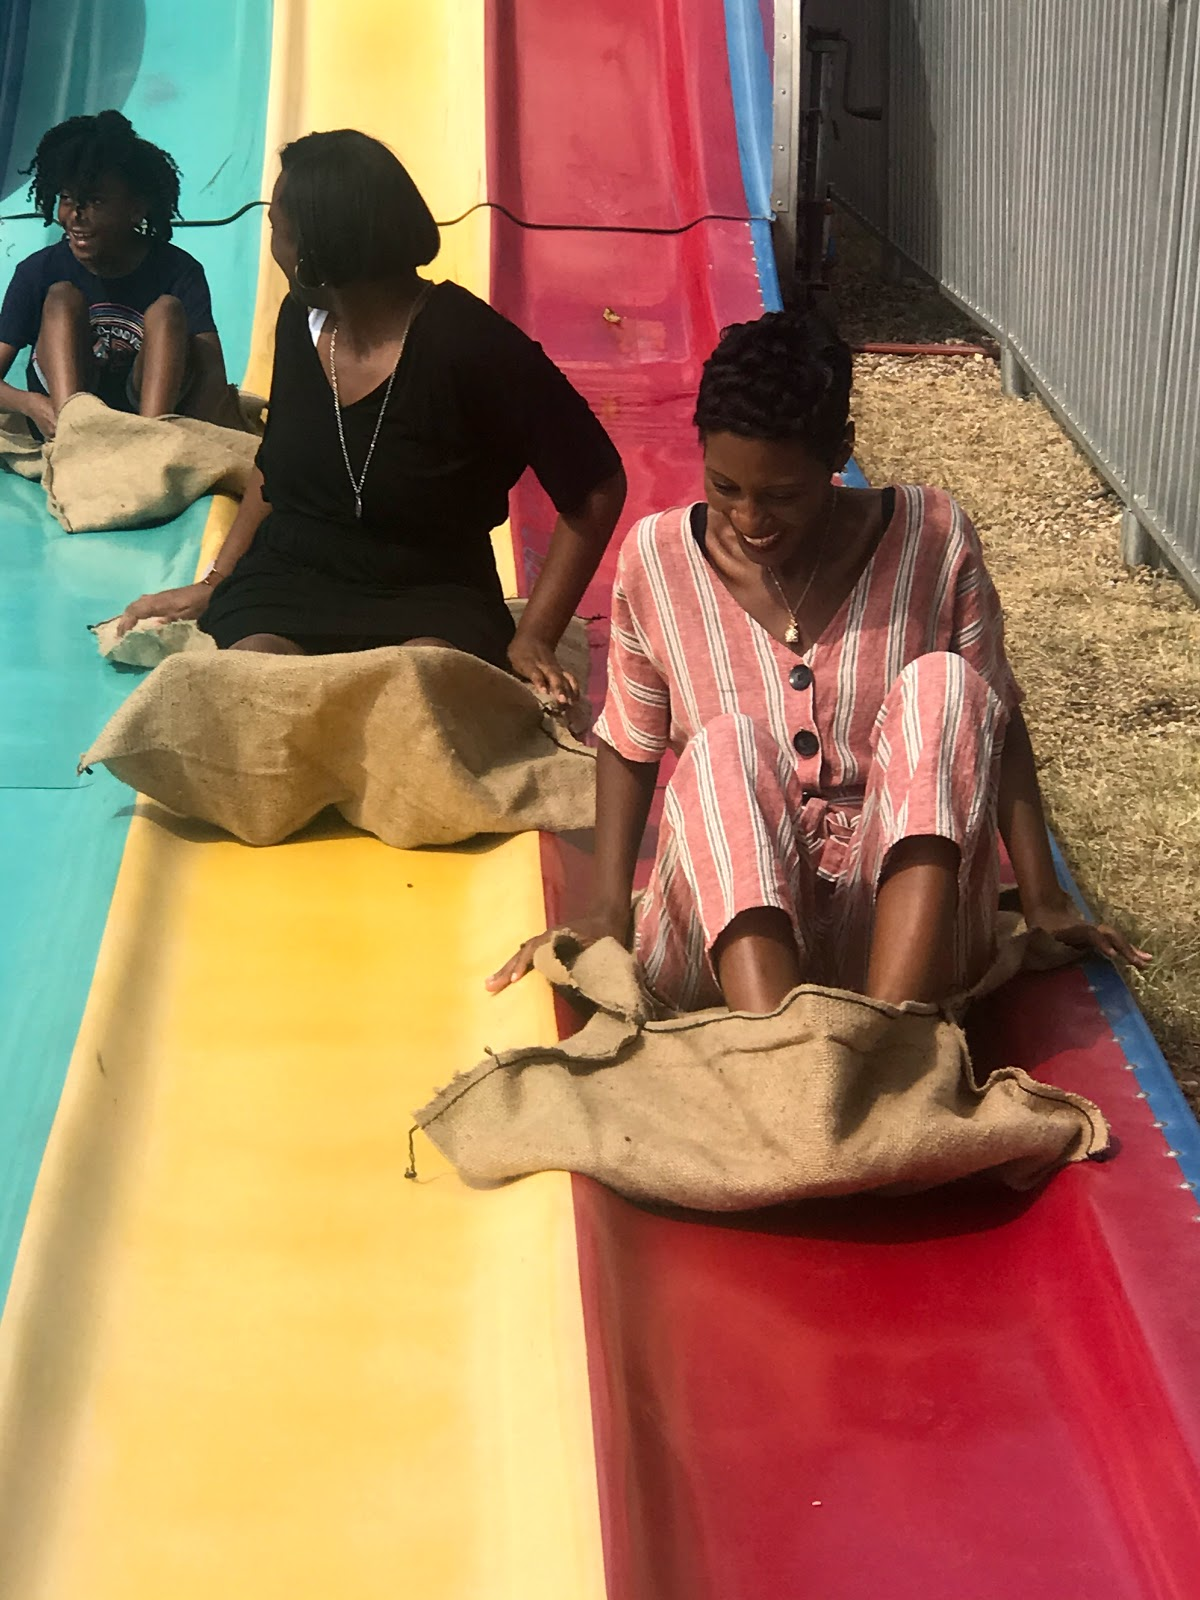 Image: Tangie Bell three daughters just got off slide at Octoberfest 2019 in Addison Texas. Family Day Out: Soaking Up The Sun, Eating Junk Food And Capping Off Summer's End!